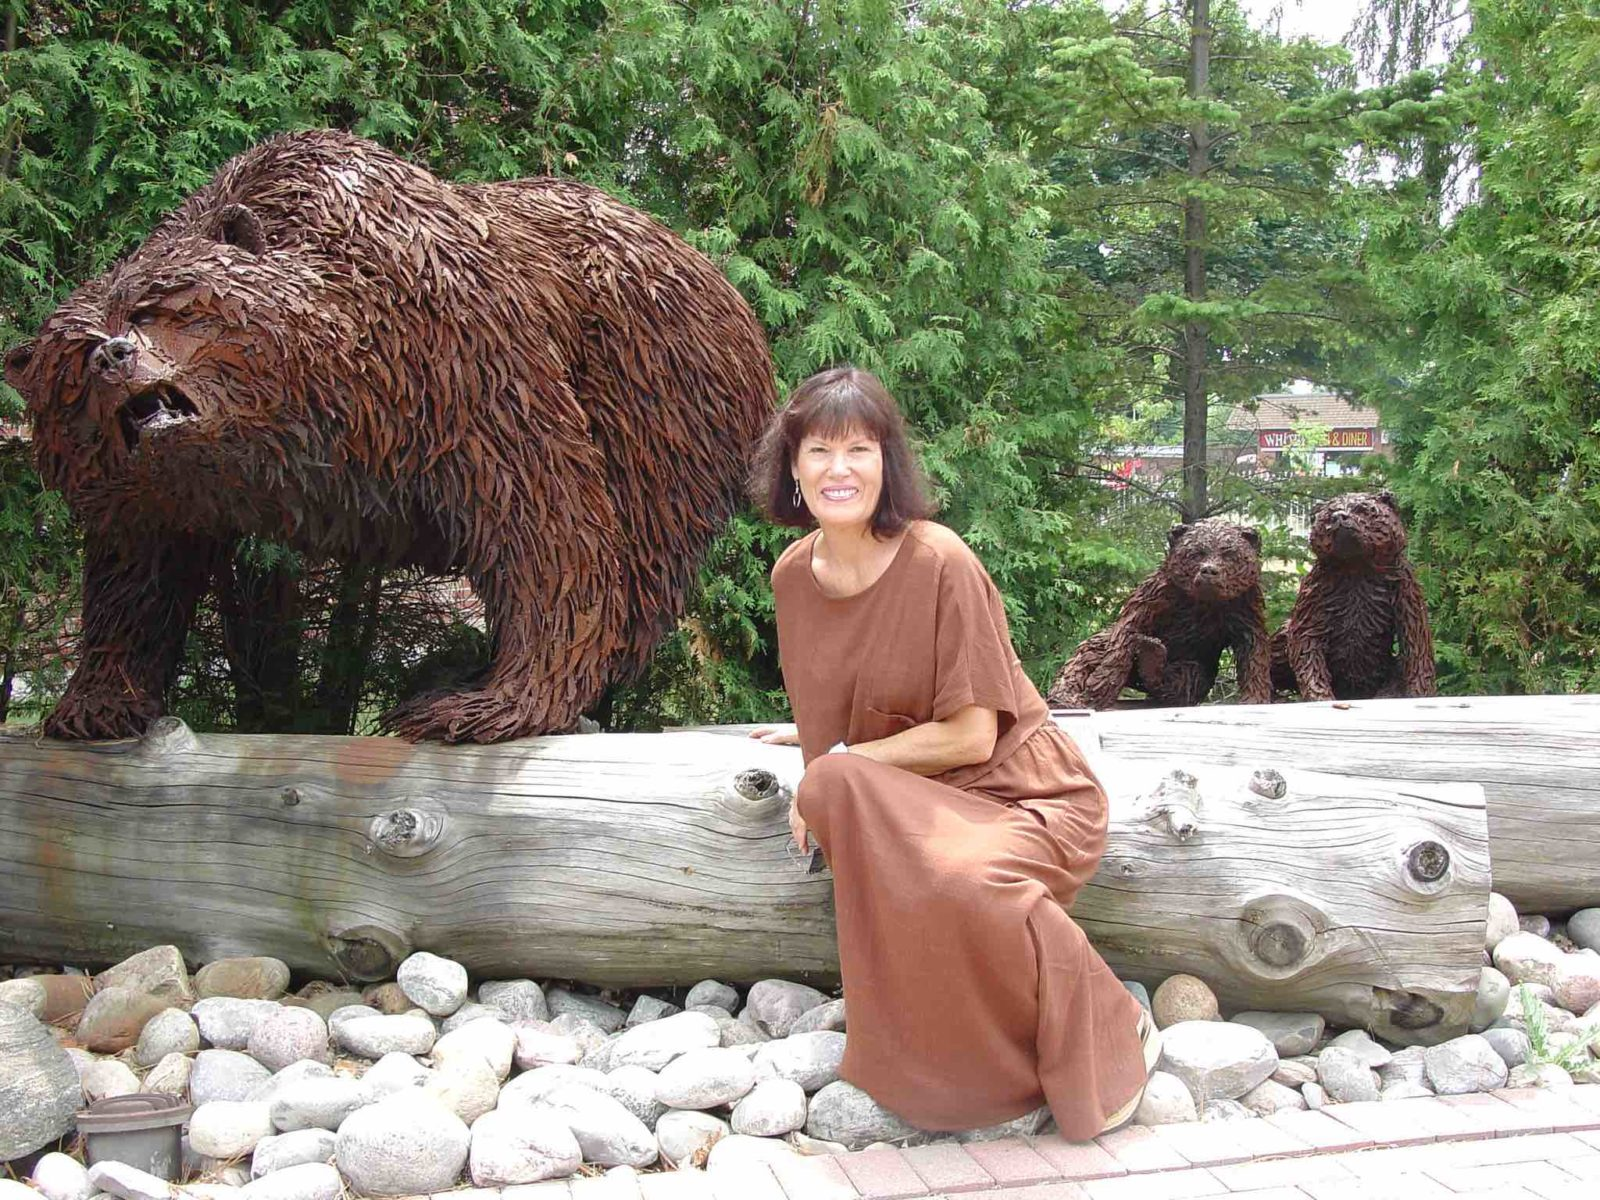 Artist Hilary Clarke Cole seated next to a metal statue of a growling bear